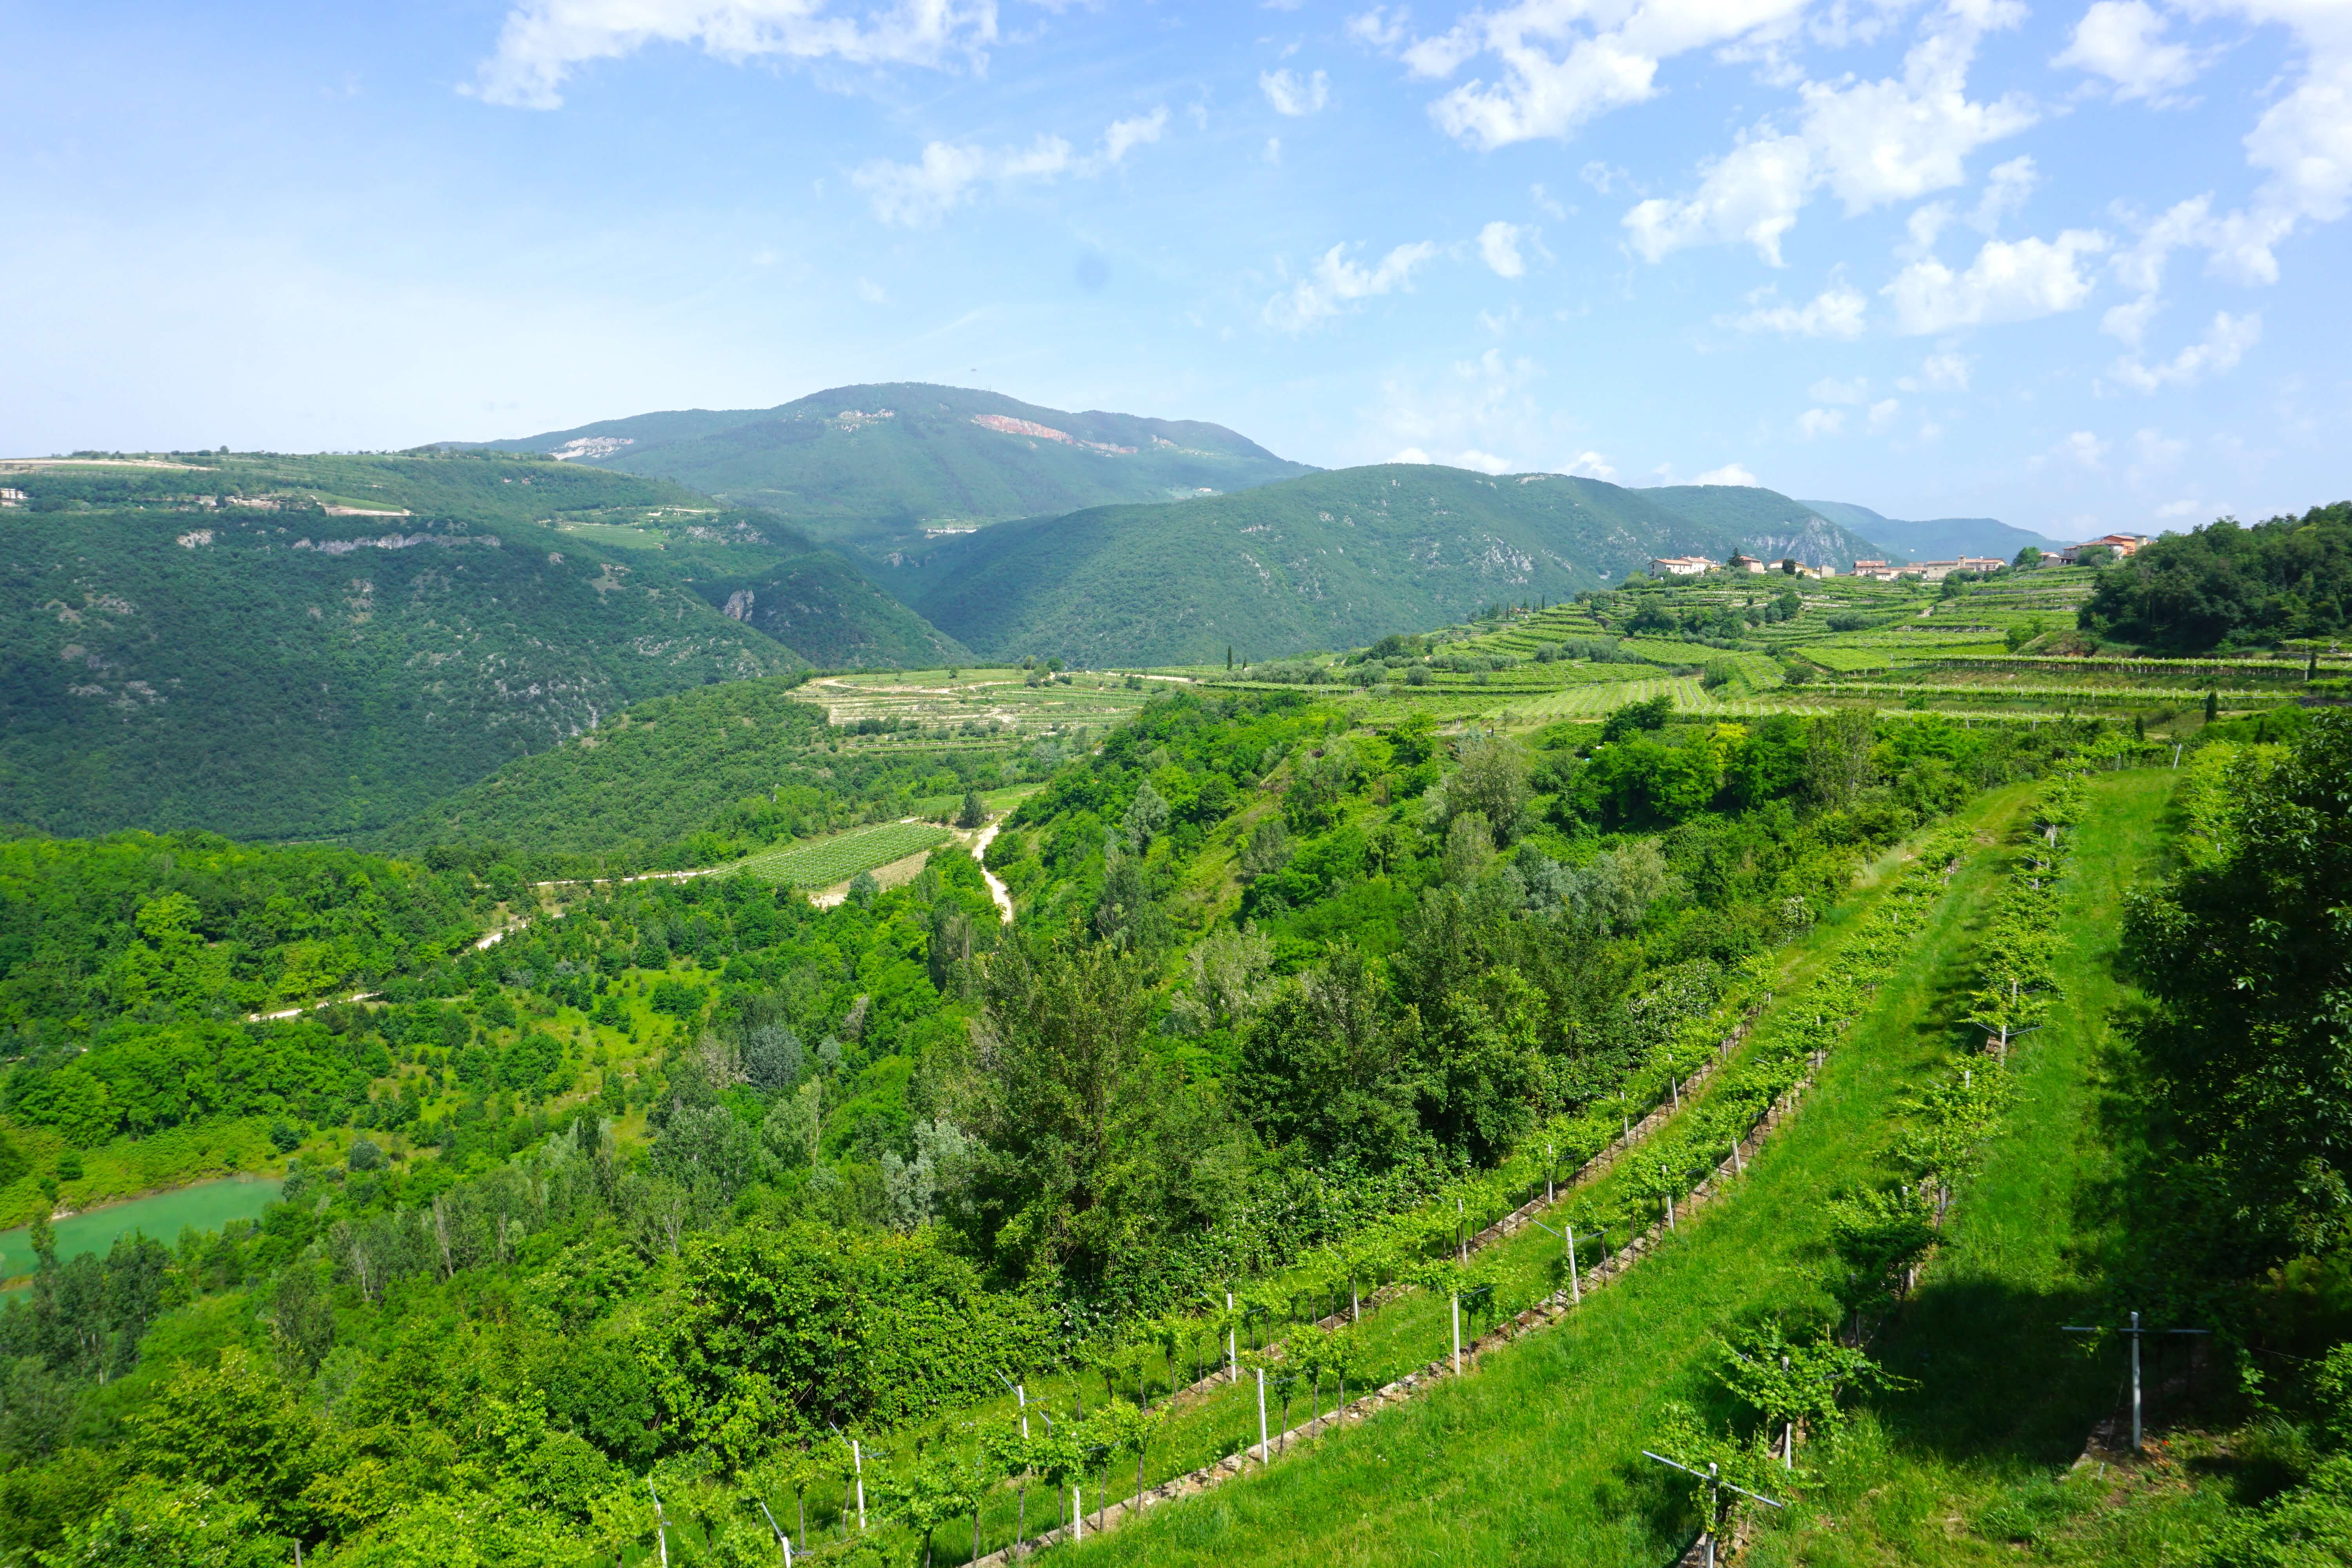 Stunning green vineyards with a mountainous backdrop in the Valpolicella wine region